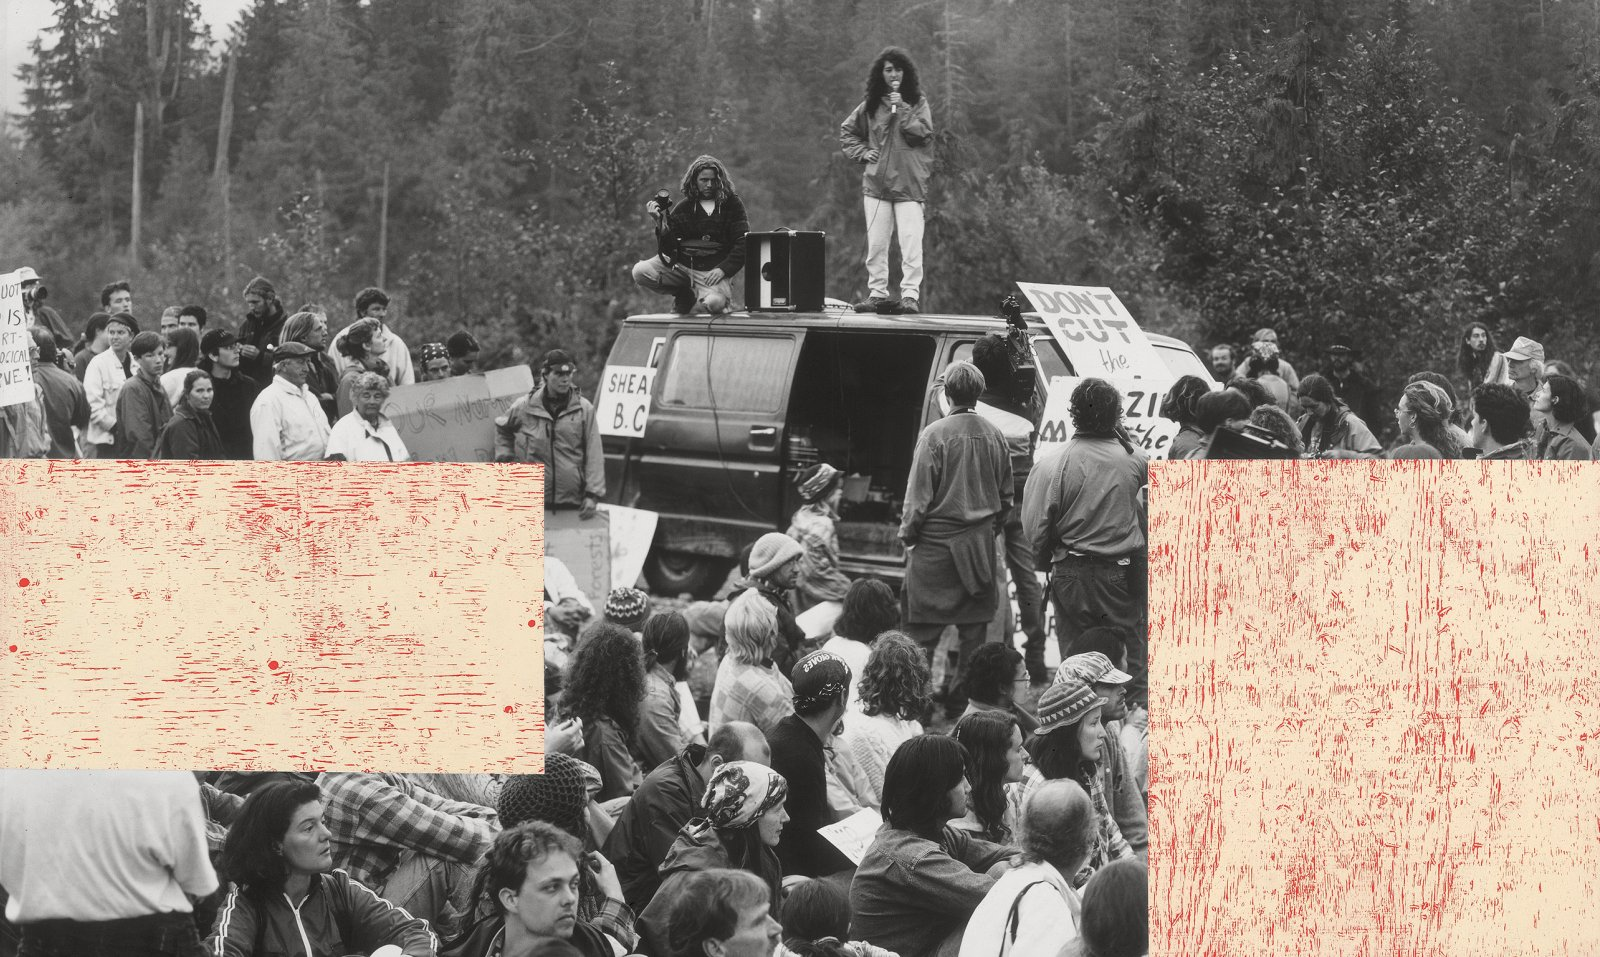 Ian Wallace, Clayoquot Protest (August 9, 1993) VII, 1993–1995, photolaminate with acrylic on canvas, 72 x 120 x 1 in. (184 x 305 x 4 cm) by Ian Wallace